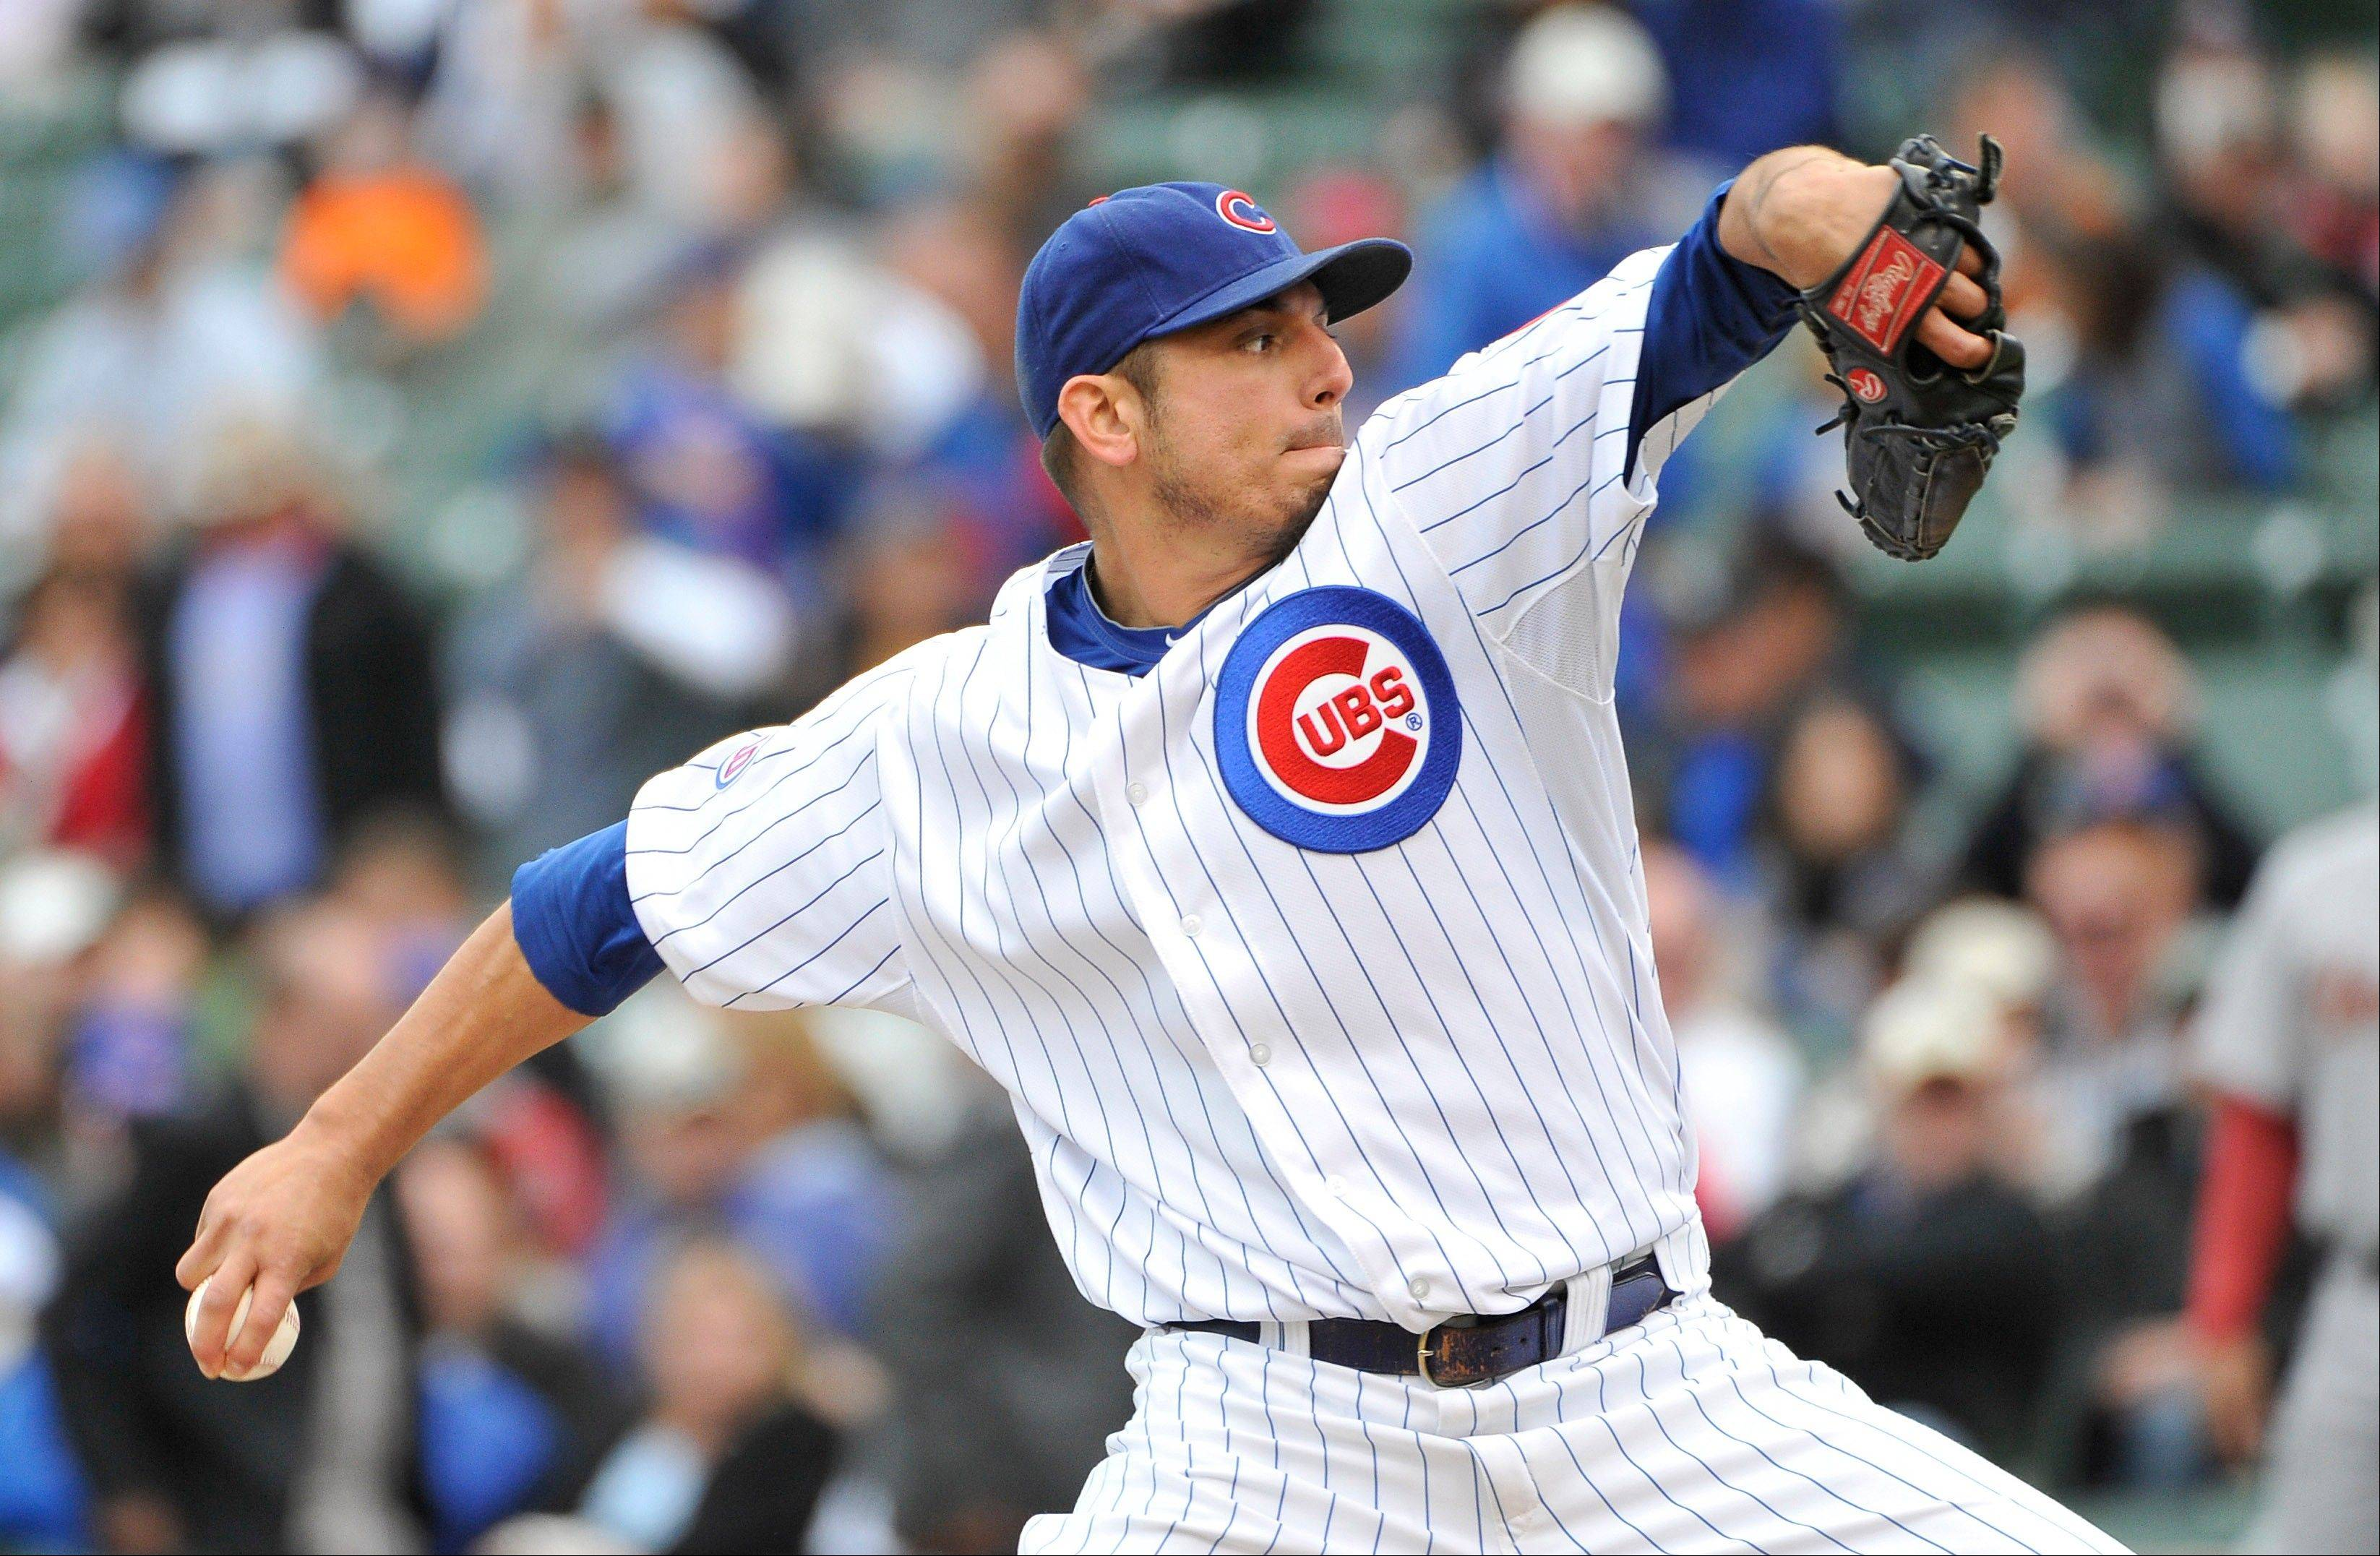 Cubs president Theo Epstein says the team is not shopping starting pitcher Matt Garza, and he's looking forward to Garza being on the mound for the Cubs next season.